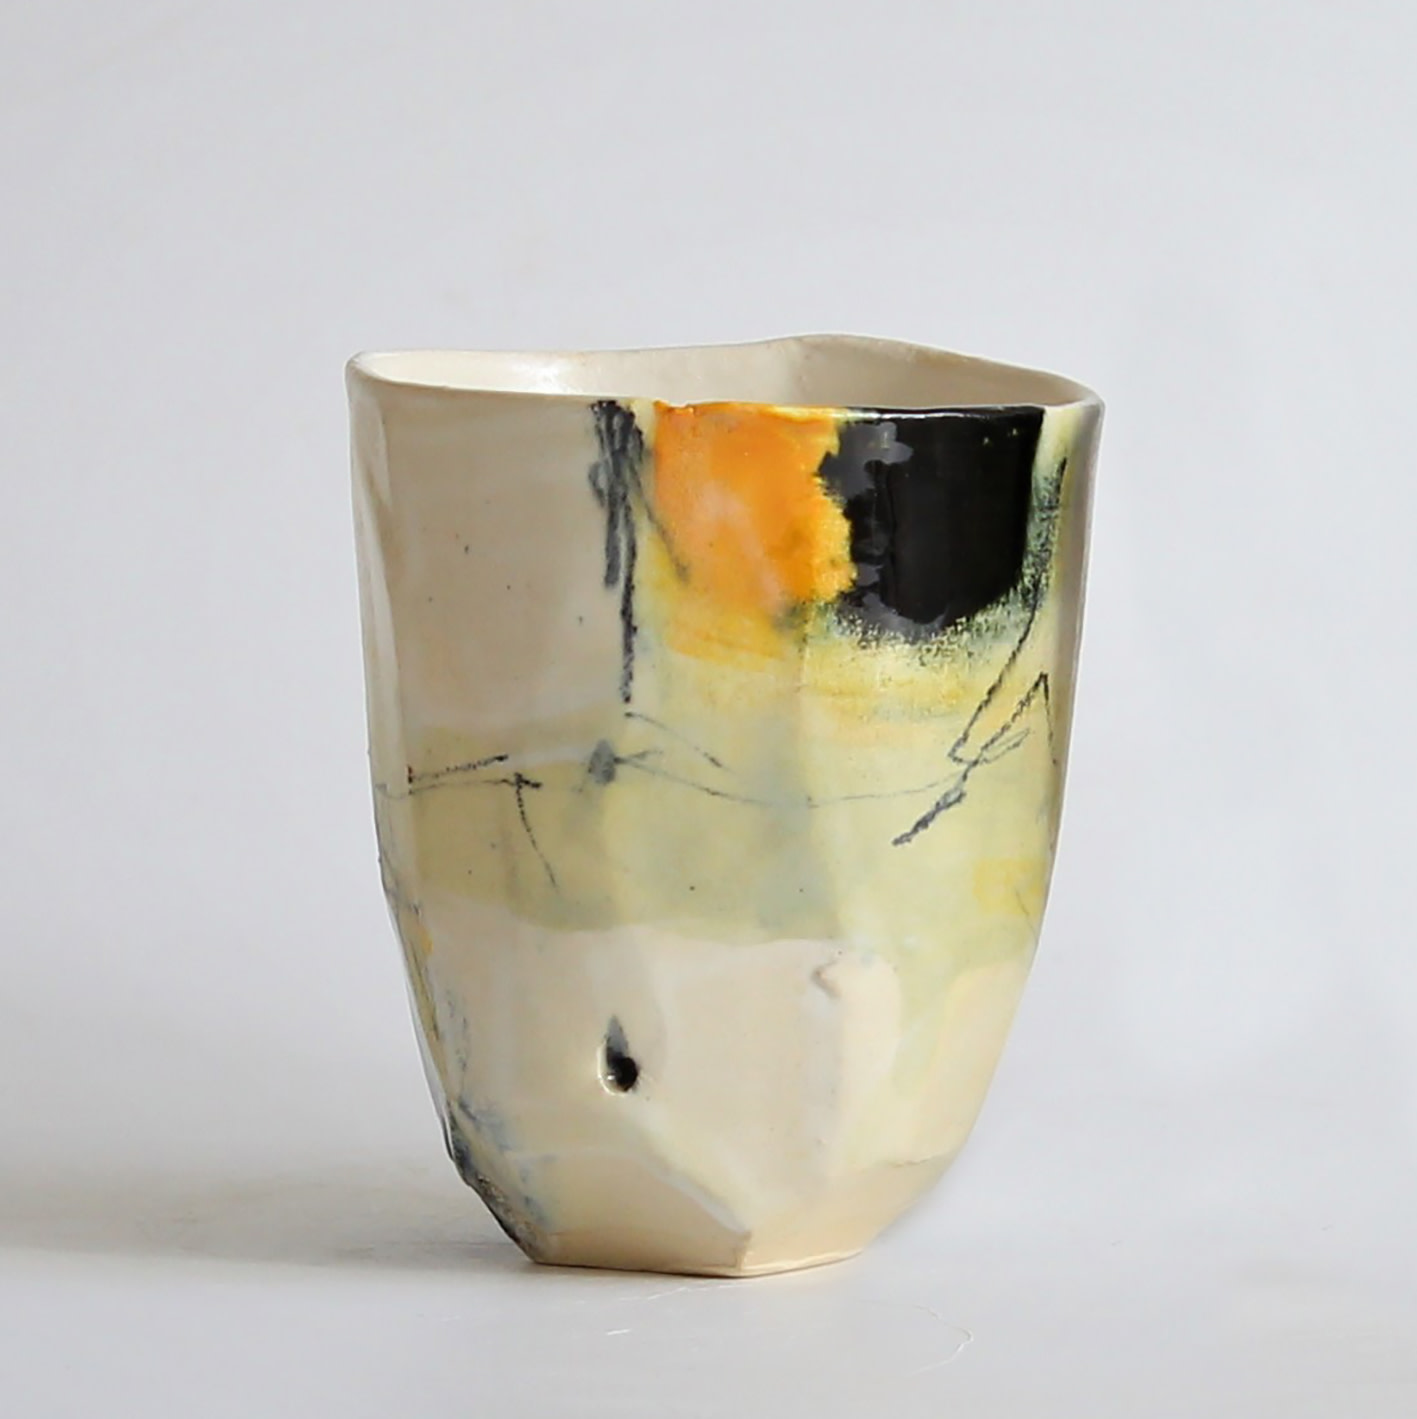 "<span class=""link fancybox-details-link""><a href=""/artists/34-barry-stedman/works/6733-barry-stedman-each-passing-day-series-vessel-h-2019/"">View Detail Page</a></span><div class=""artist""><strong>Barry Stedman</strong></div> <div class=""title""><em>'Each Passing Day' Series Vessel (H)</em>, 2019</div> <div class=""medium"">thrown, altered earthenware</div> <div class=""dimensions"">10.5 x 9 cm</div><div class=""price"">£132.00</div><div class=""copyright_line"">Own Art: £ 13.20 x 10 Months, 0% APR</div>"